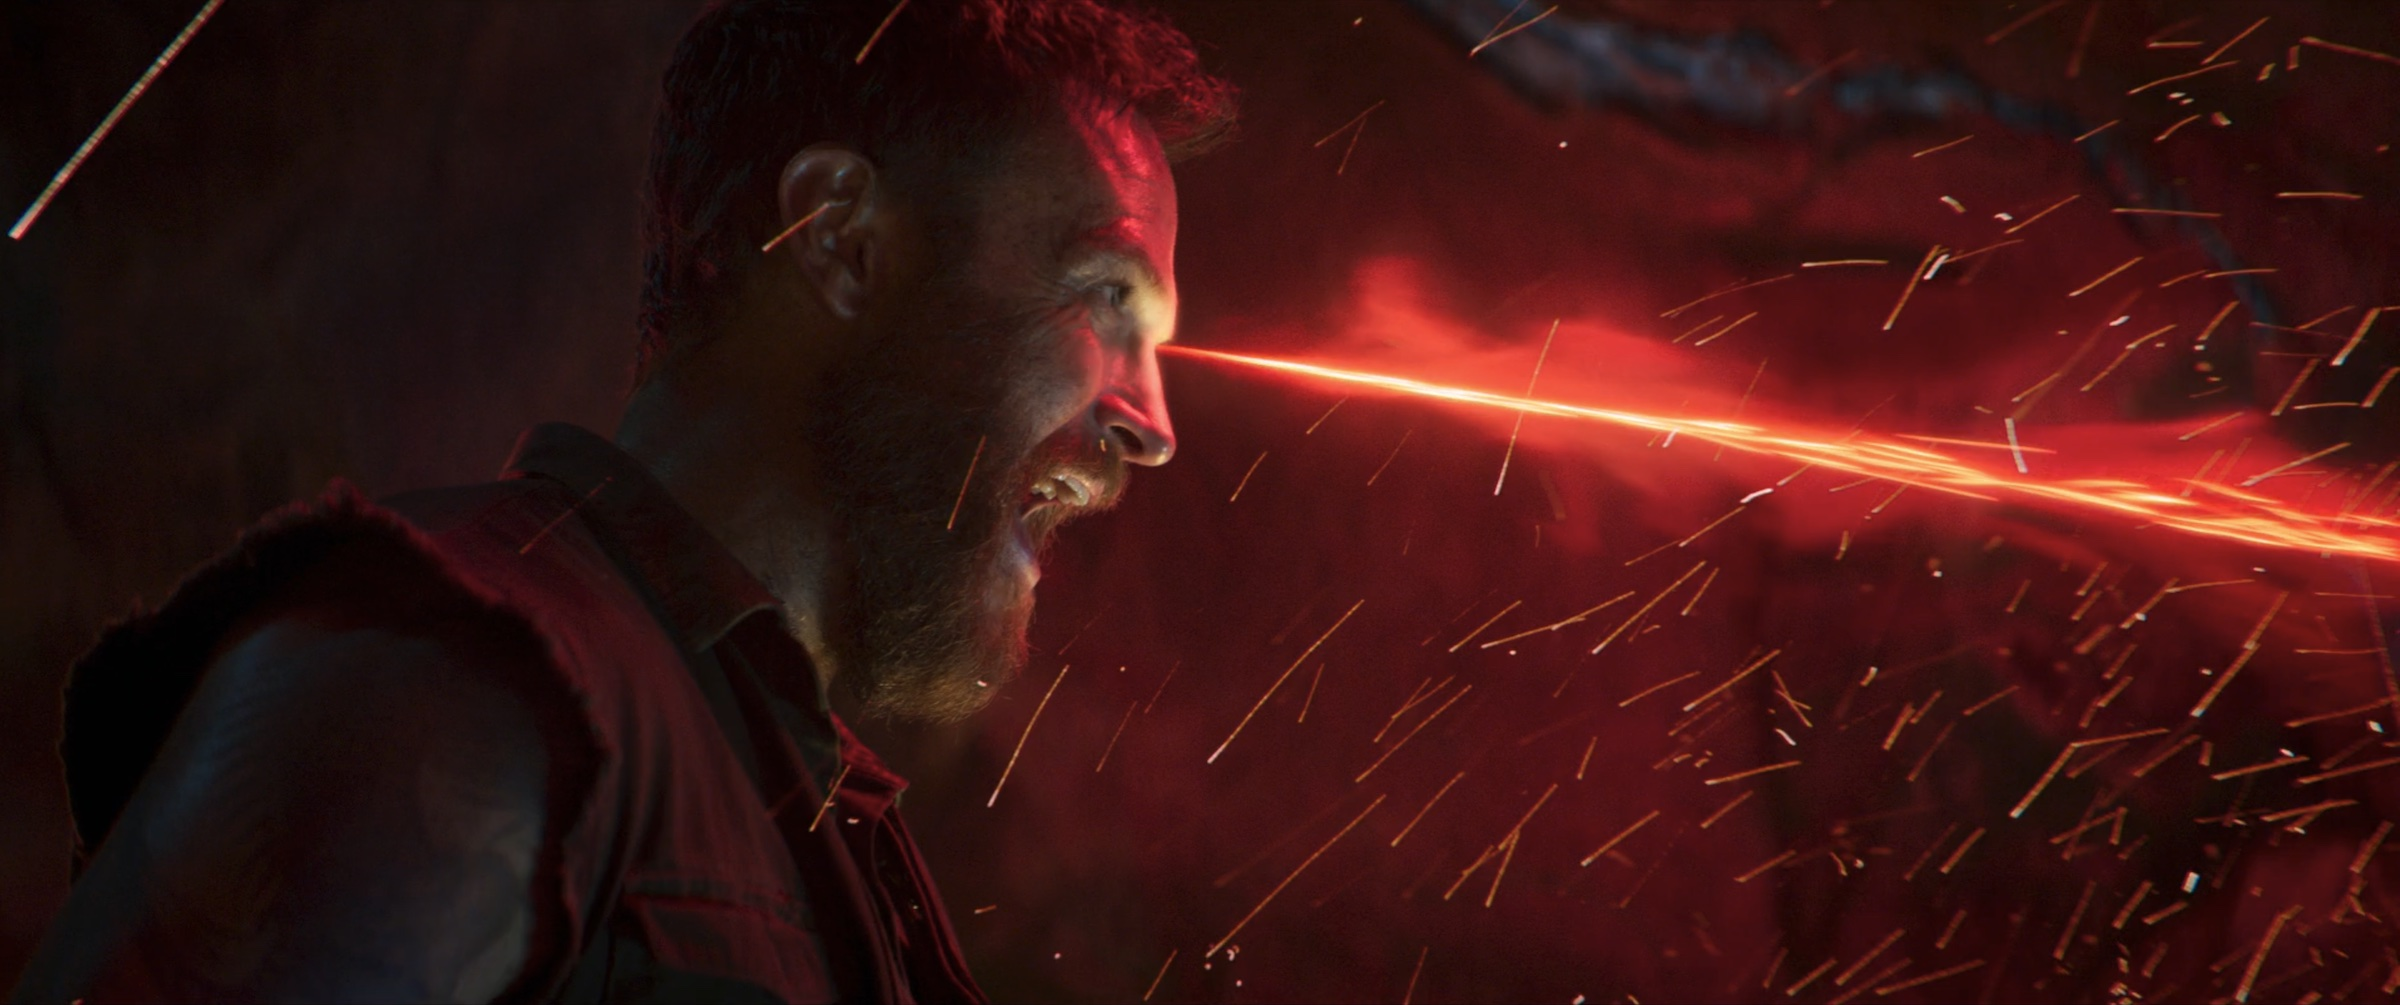 Kano fires a red energy beam from his eye in Mortal Kombat (2021)